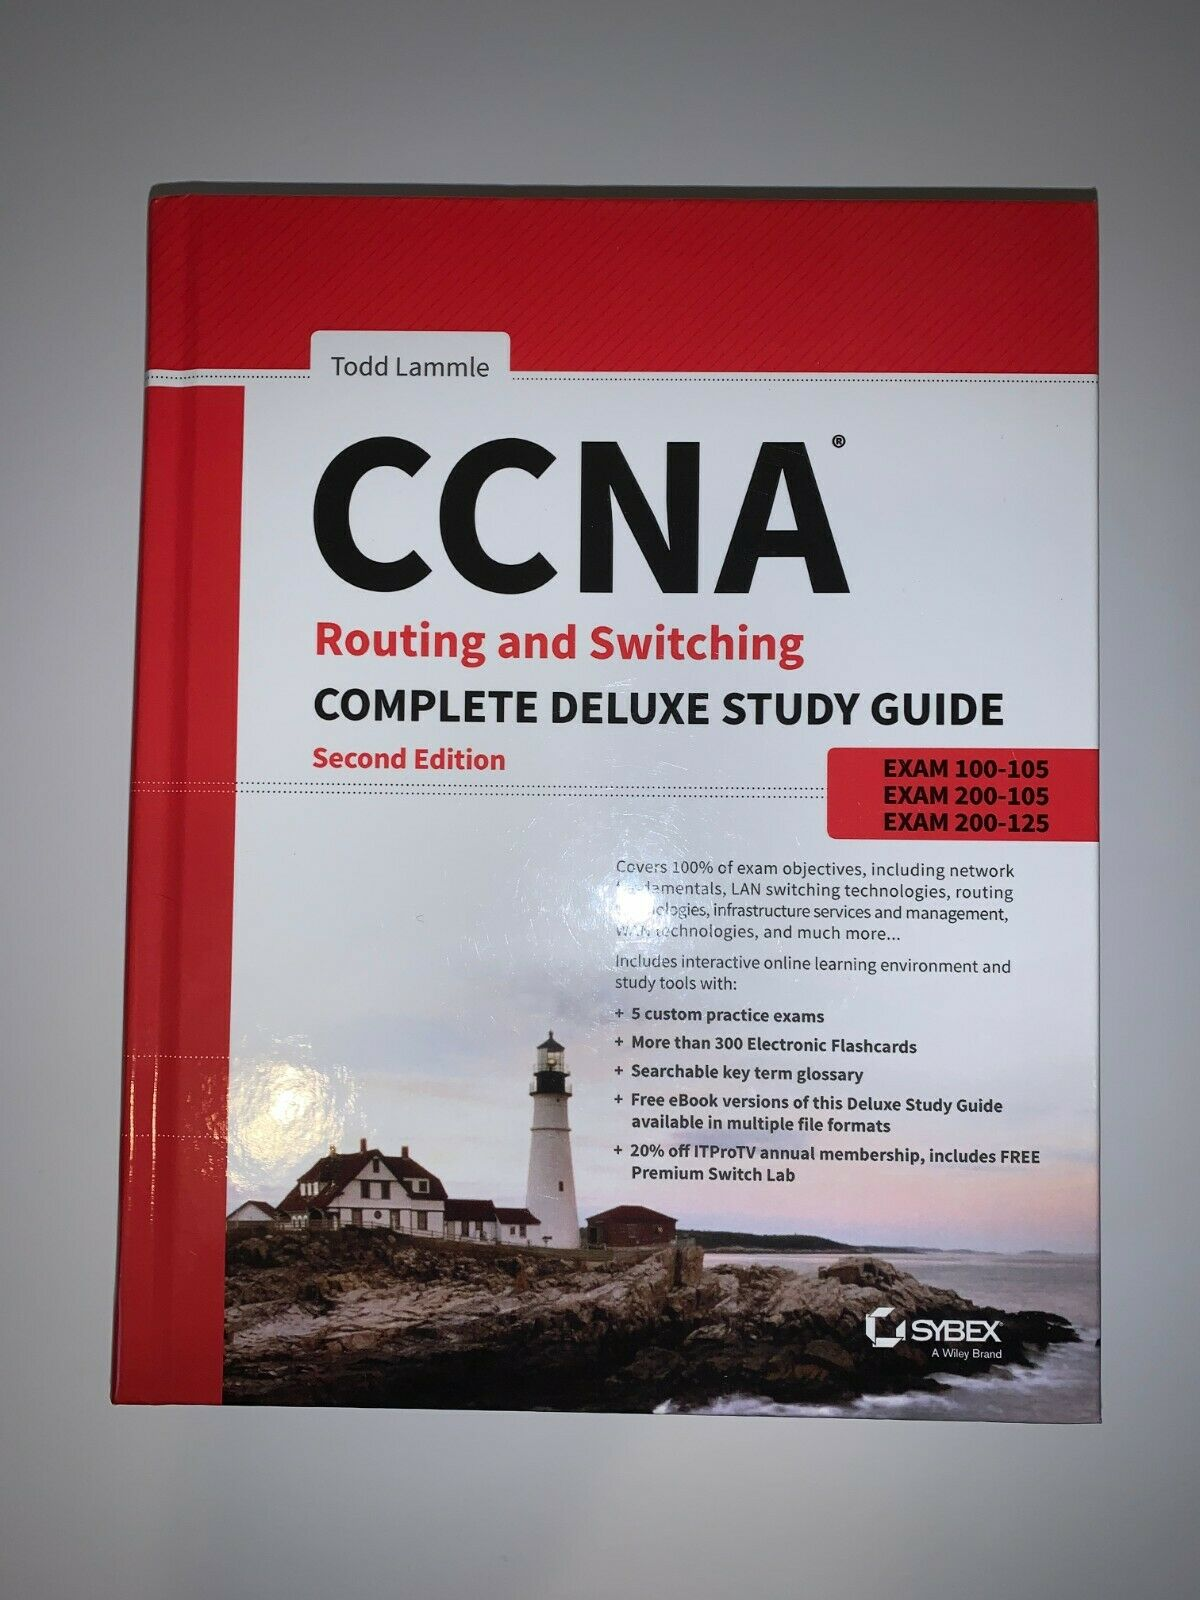 Exam 200-105 CCNA Routing and Switching Complete Deluxe Study Guide Exam 100-105 Exam 200-125